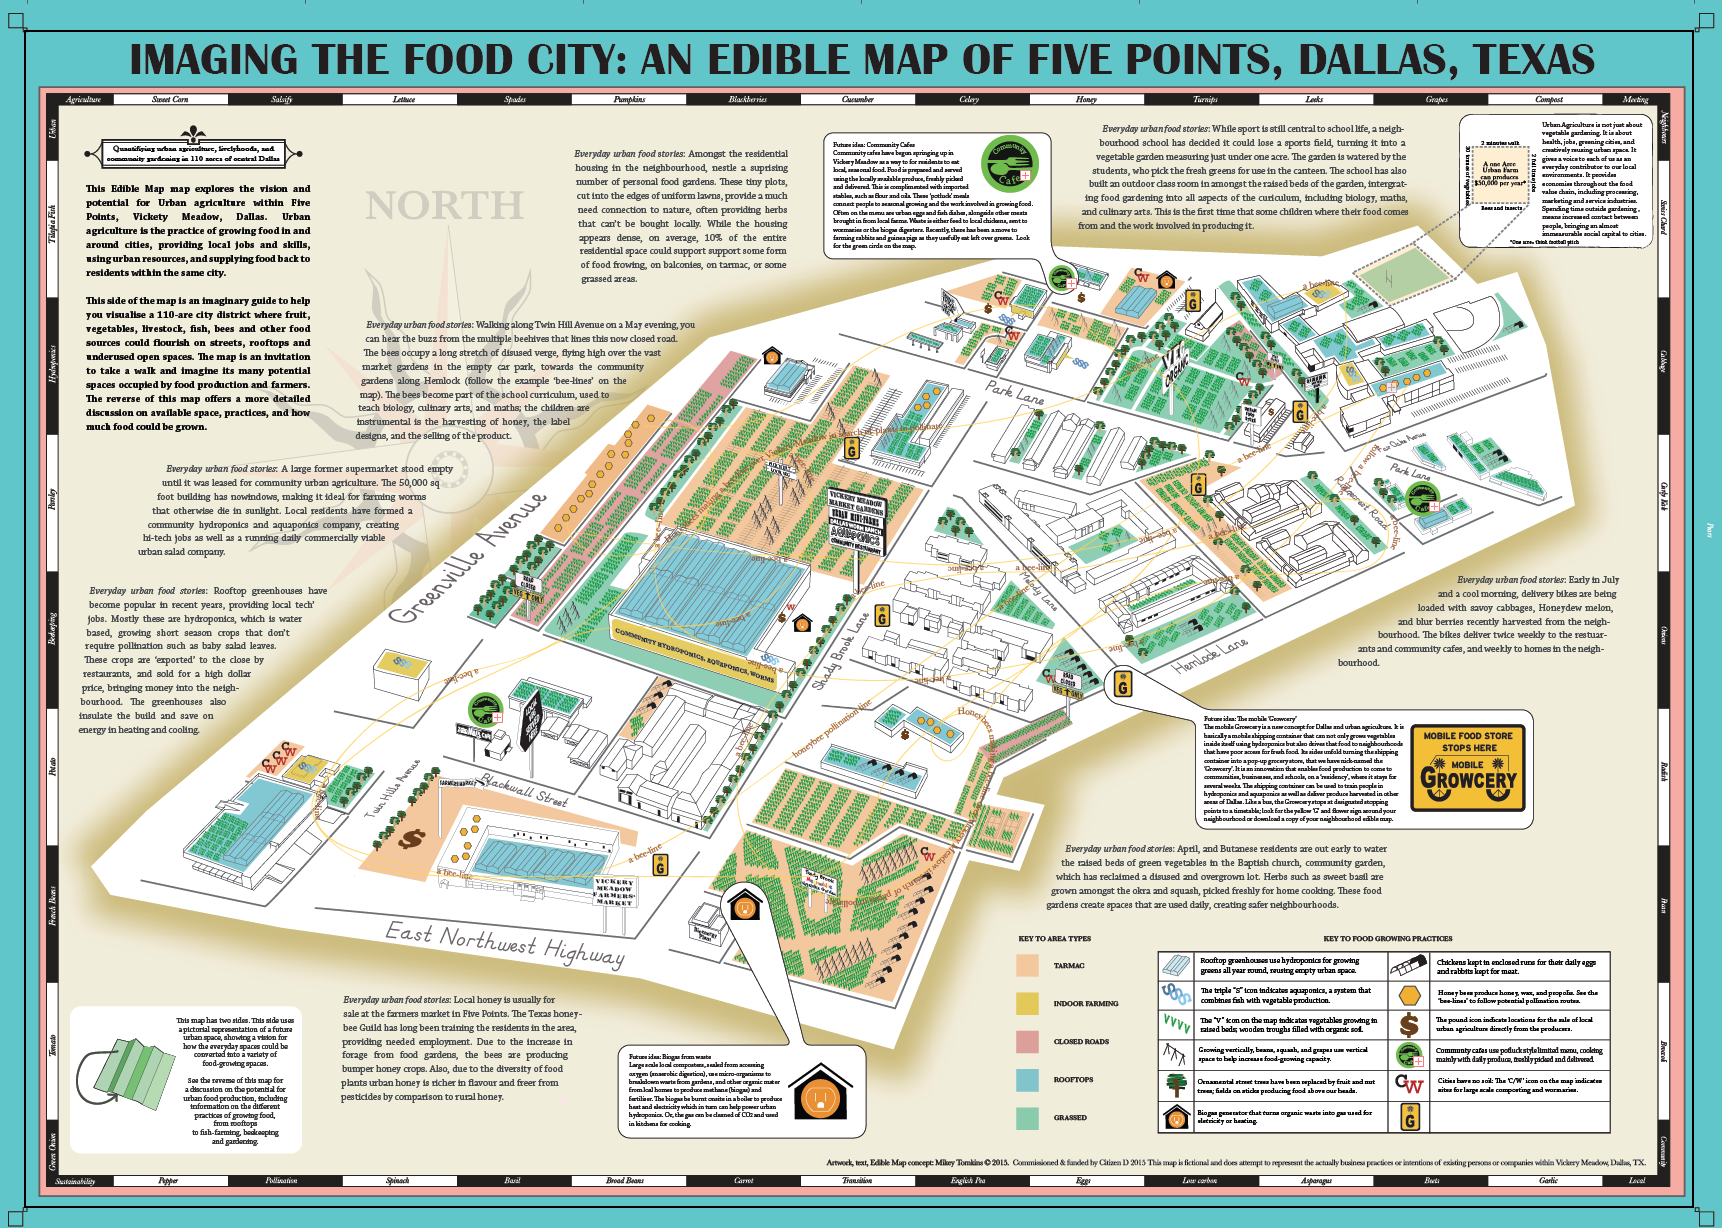 Edible Map of Dallas